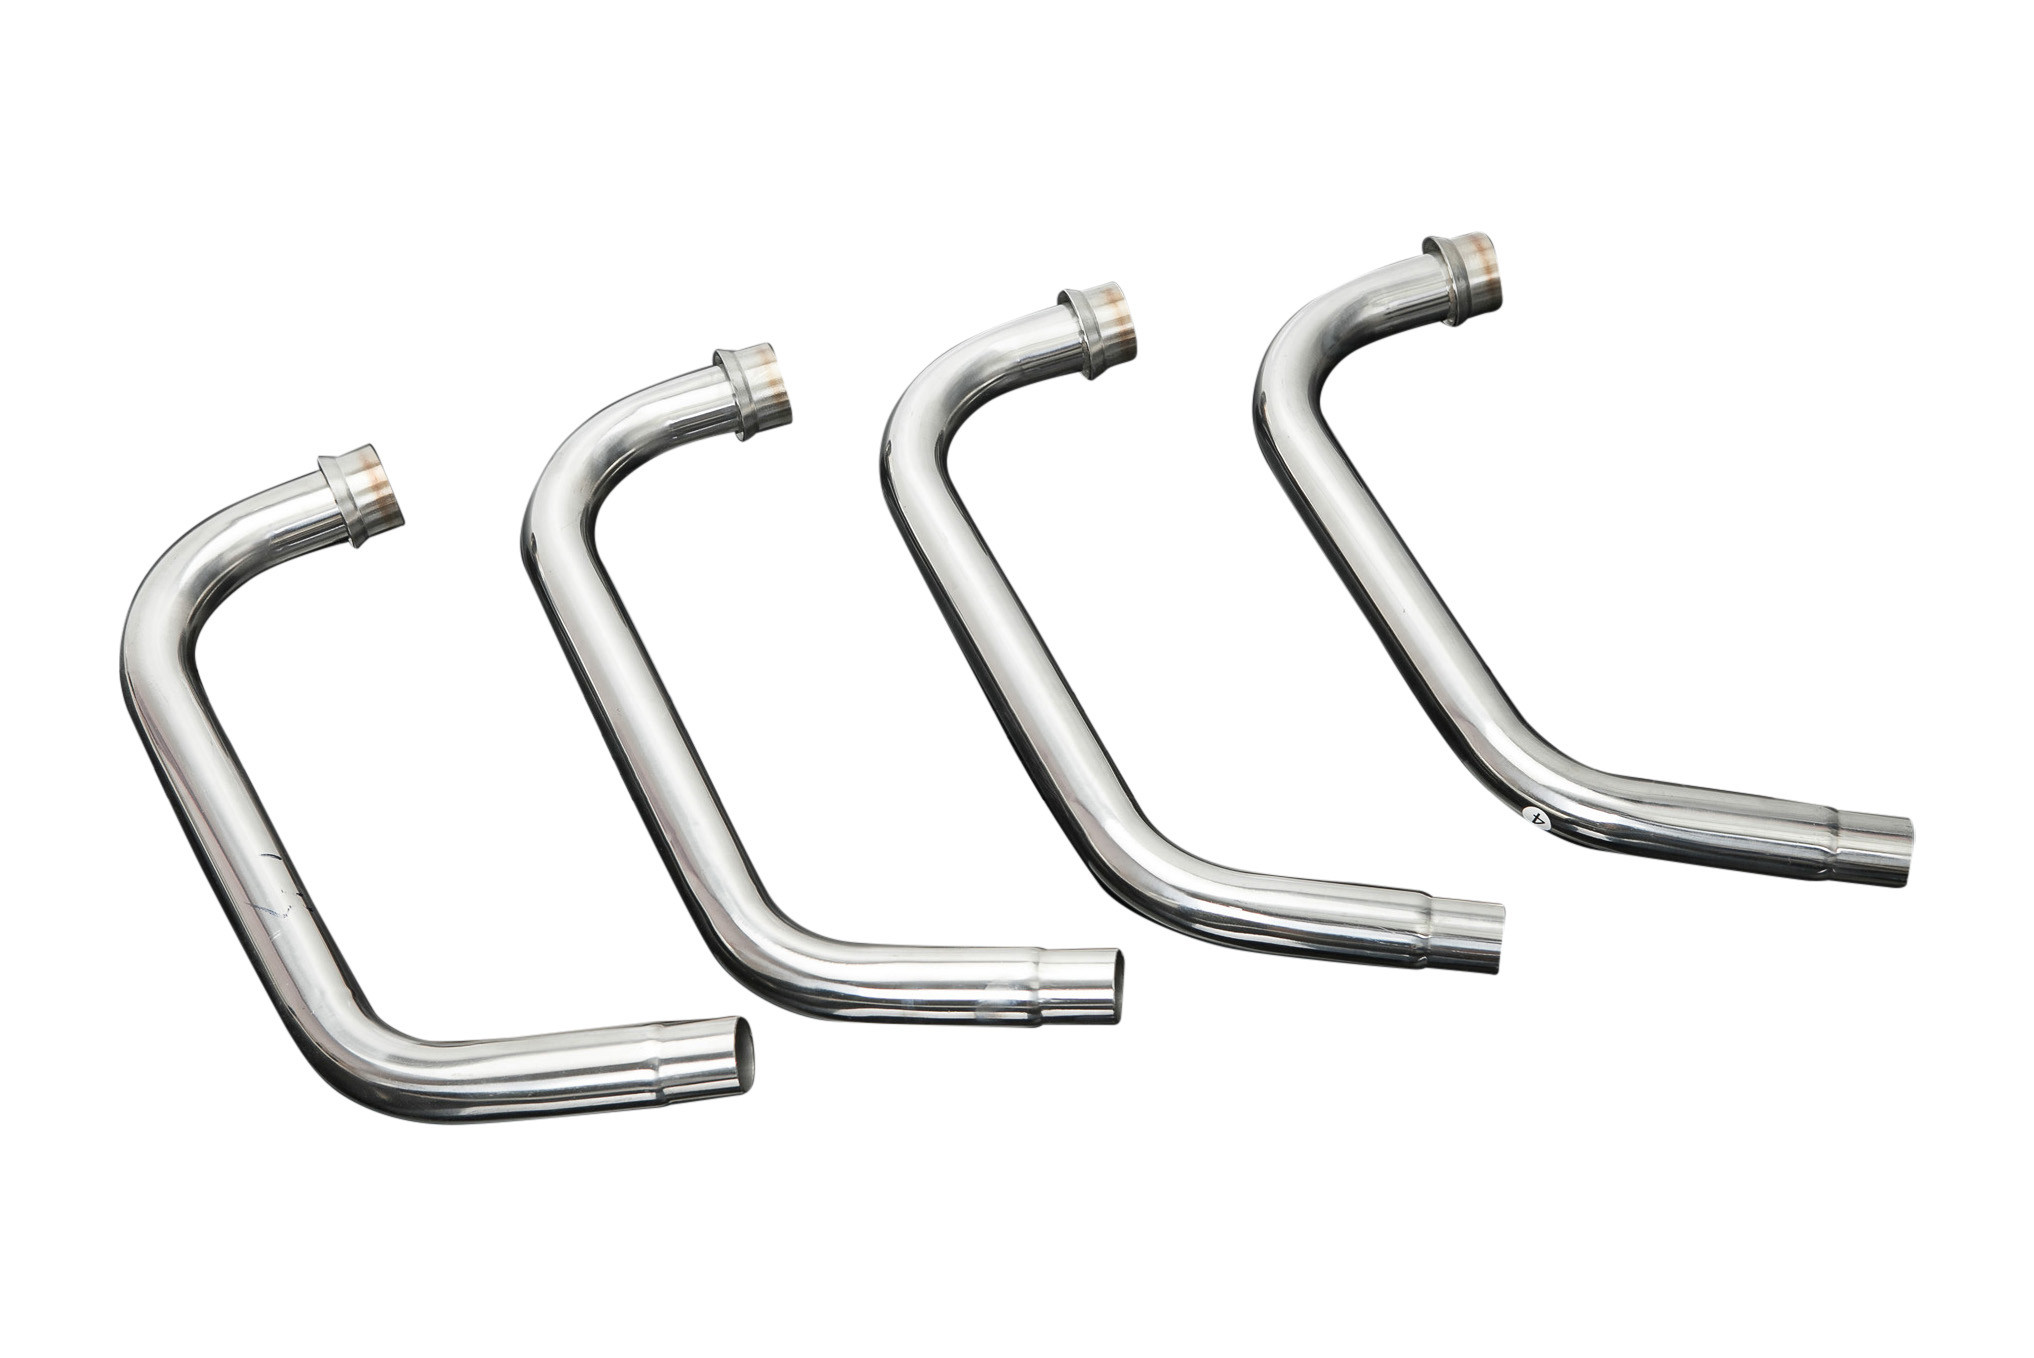 Stainless Steel Downpipes Header Exhaust Manifold Yamaha Xjr 04 05 06